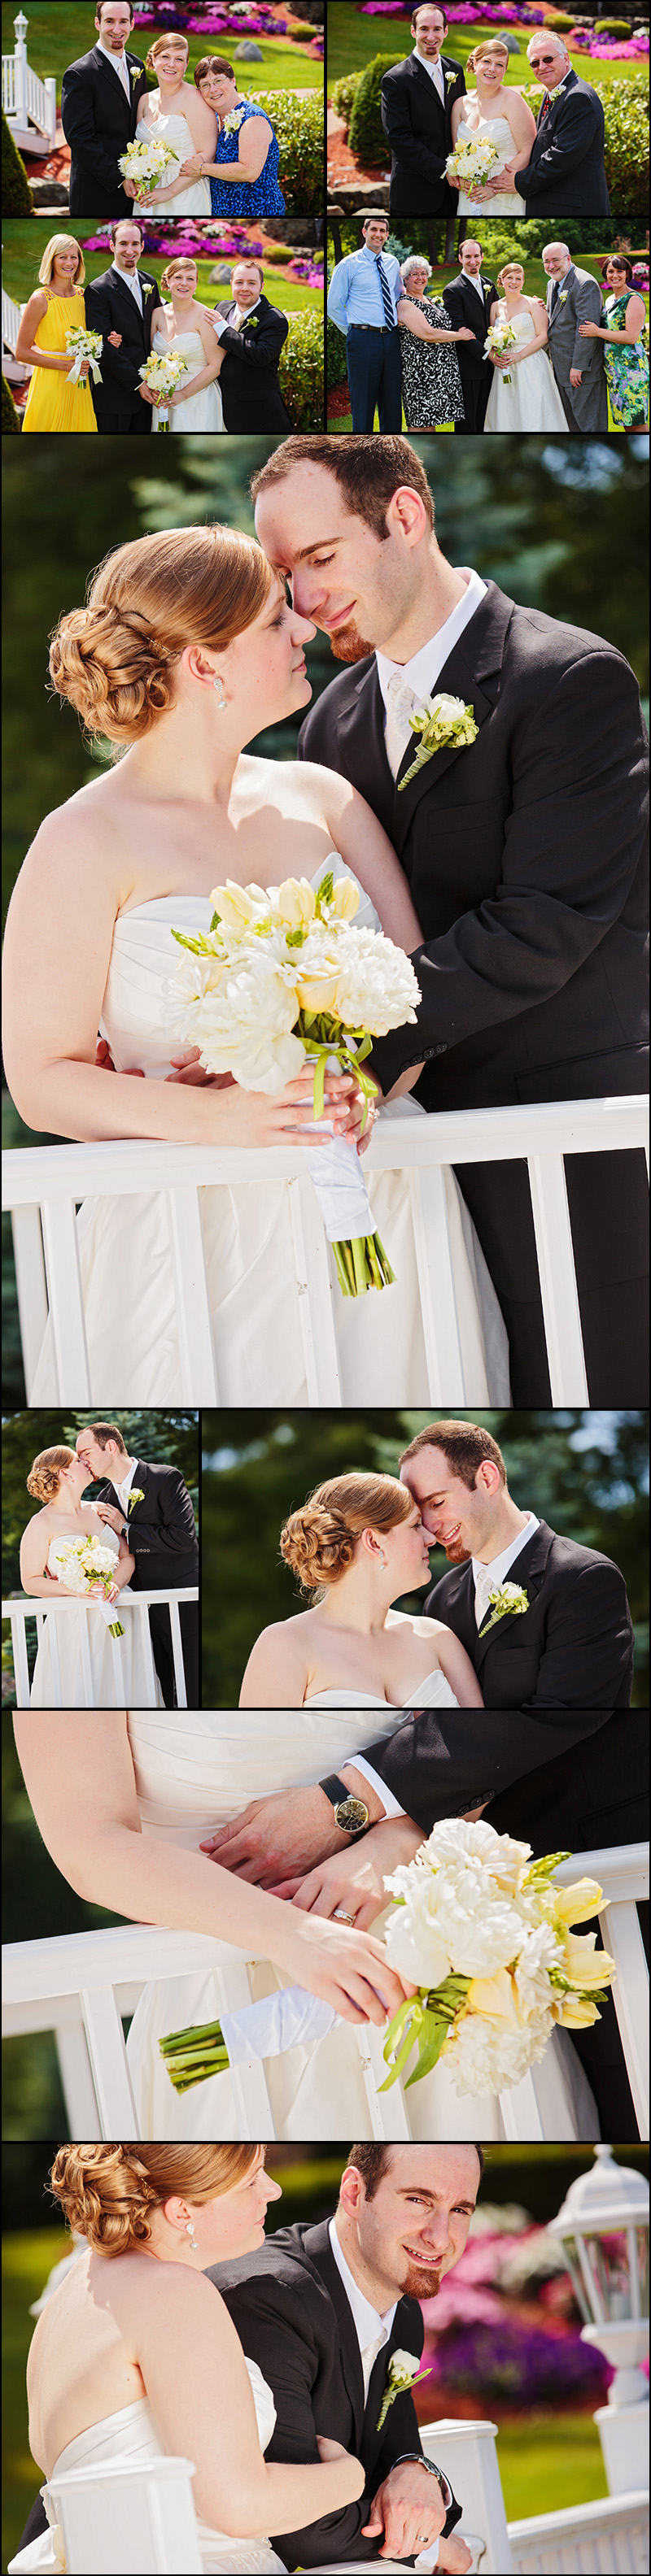 NEW ENGLAND WEDDING PHOTOS AT CASTLETON NH